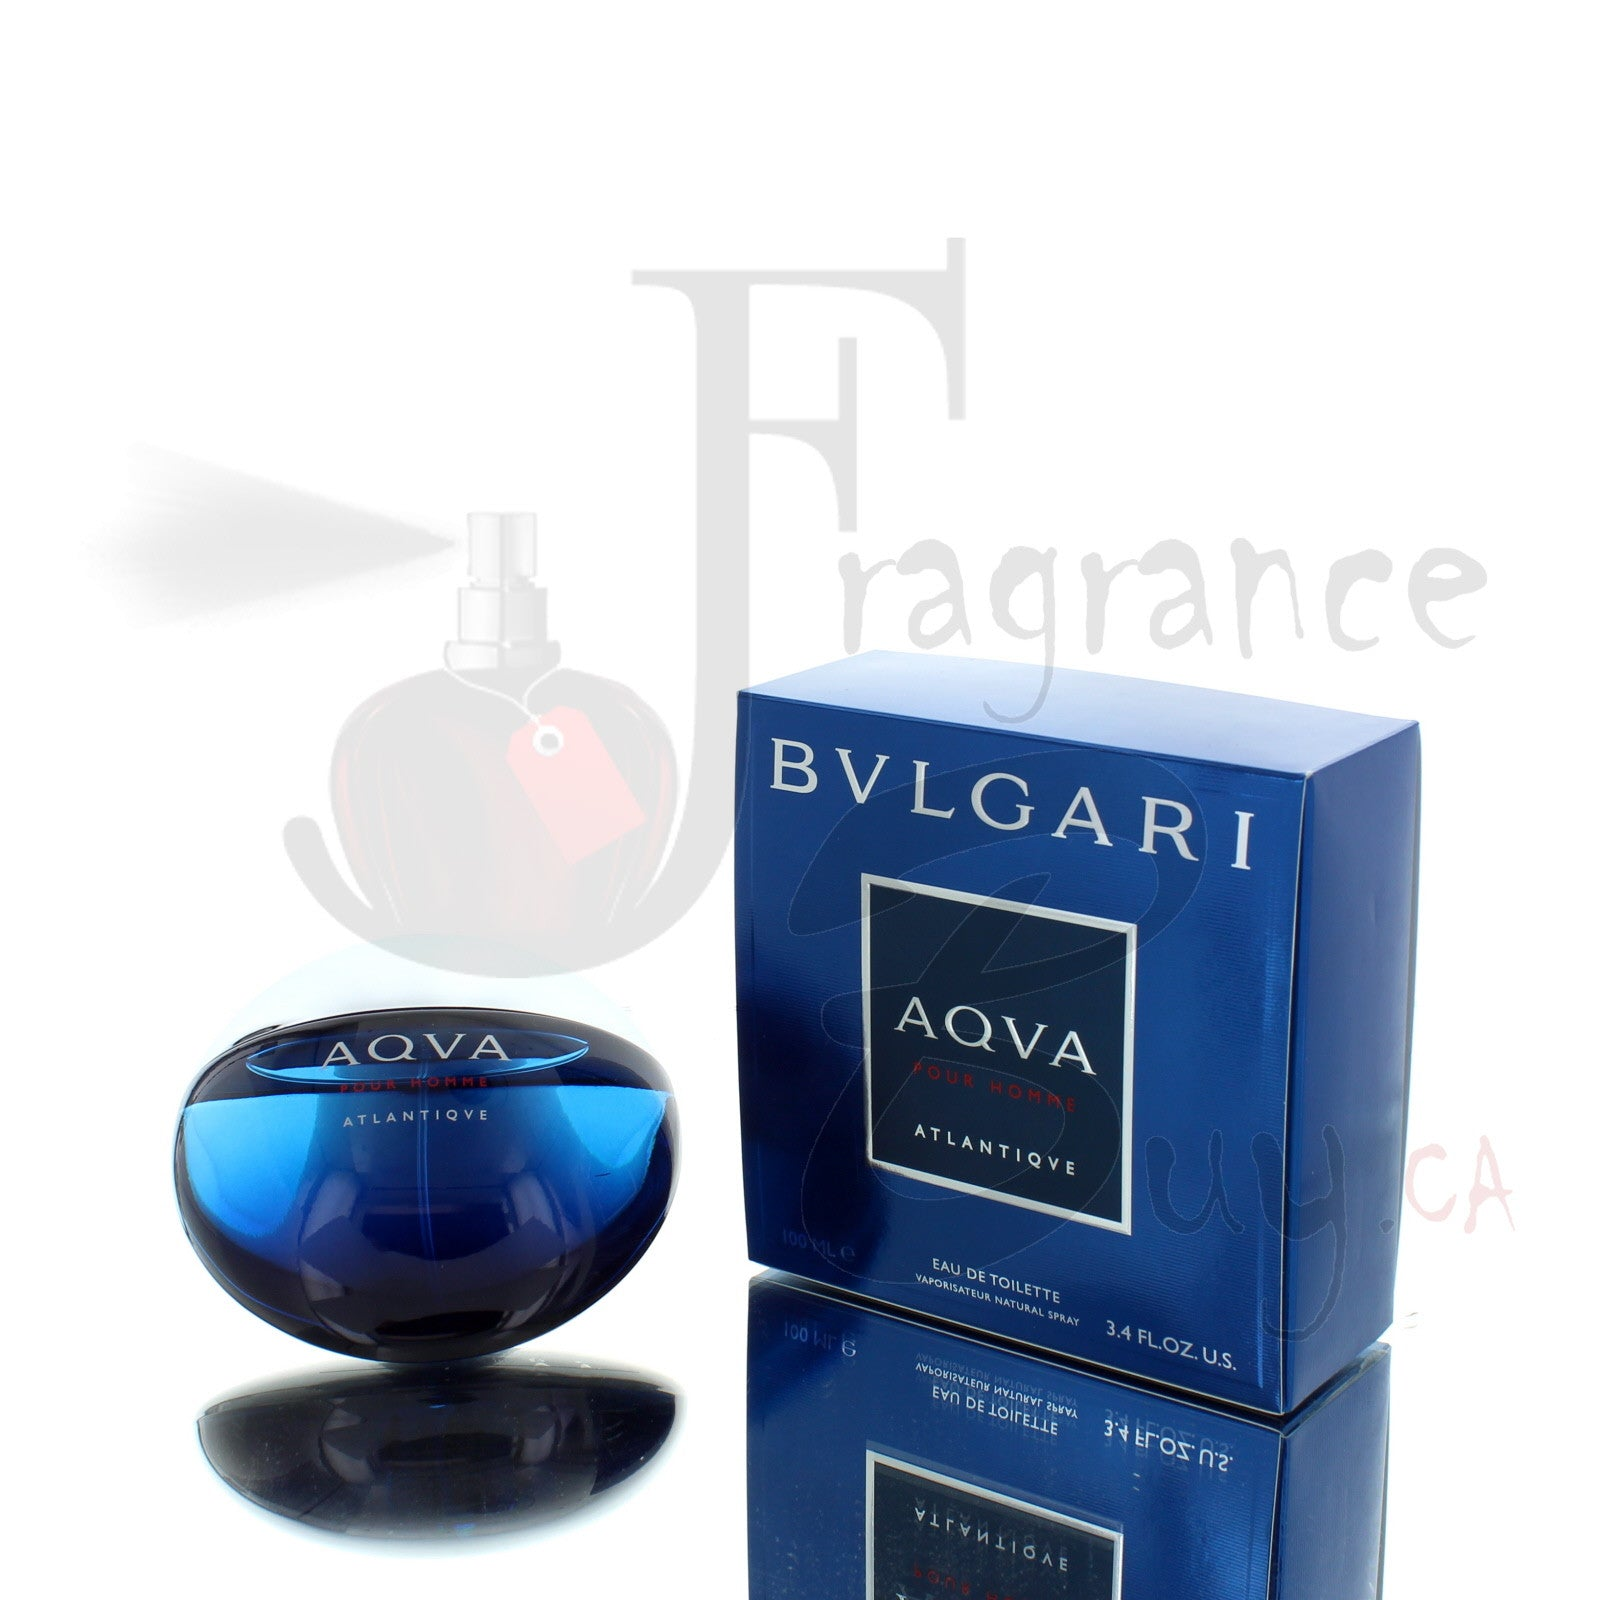 Bvlgari Aqva Atlantiqve For Man